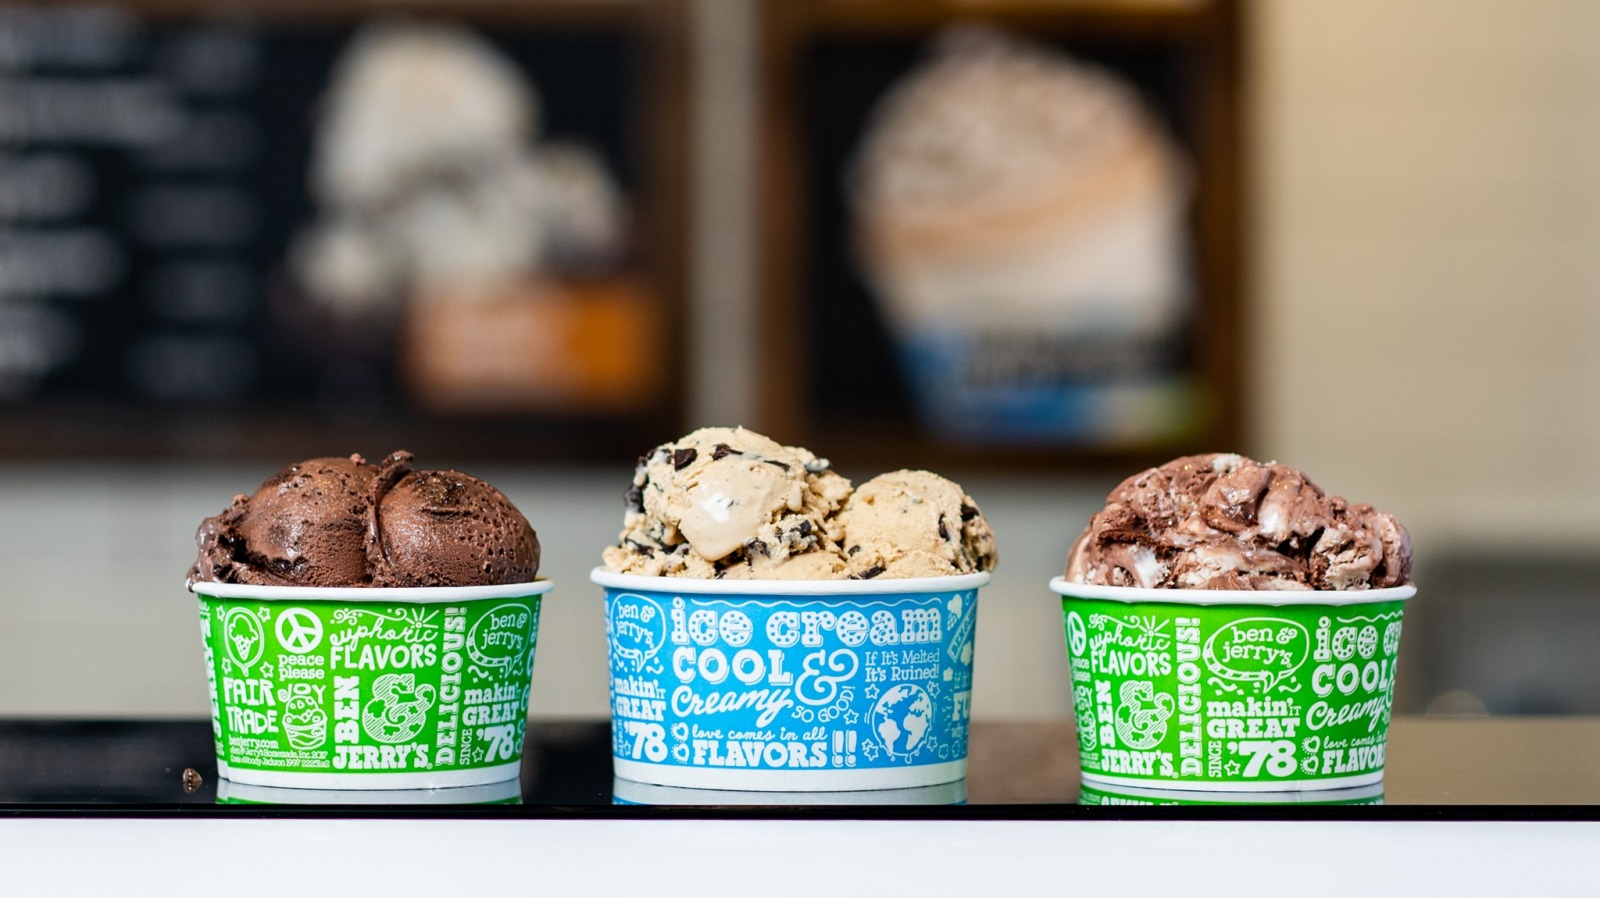 The Most Popular Ben Jerry S Ice Cream Flavors The nutrition facts panel refresh may prove timely then because we know that consumers are more apt to read nutritional information on critical occasions influencing reading nutrition facts: popular ben jerry s ice cream flavors